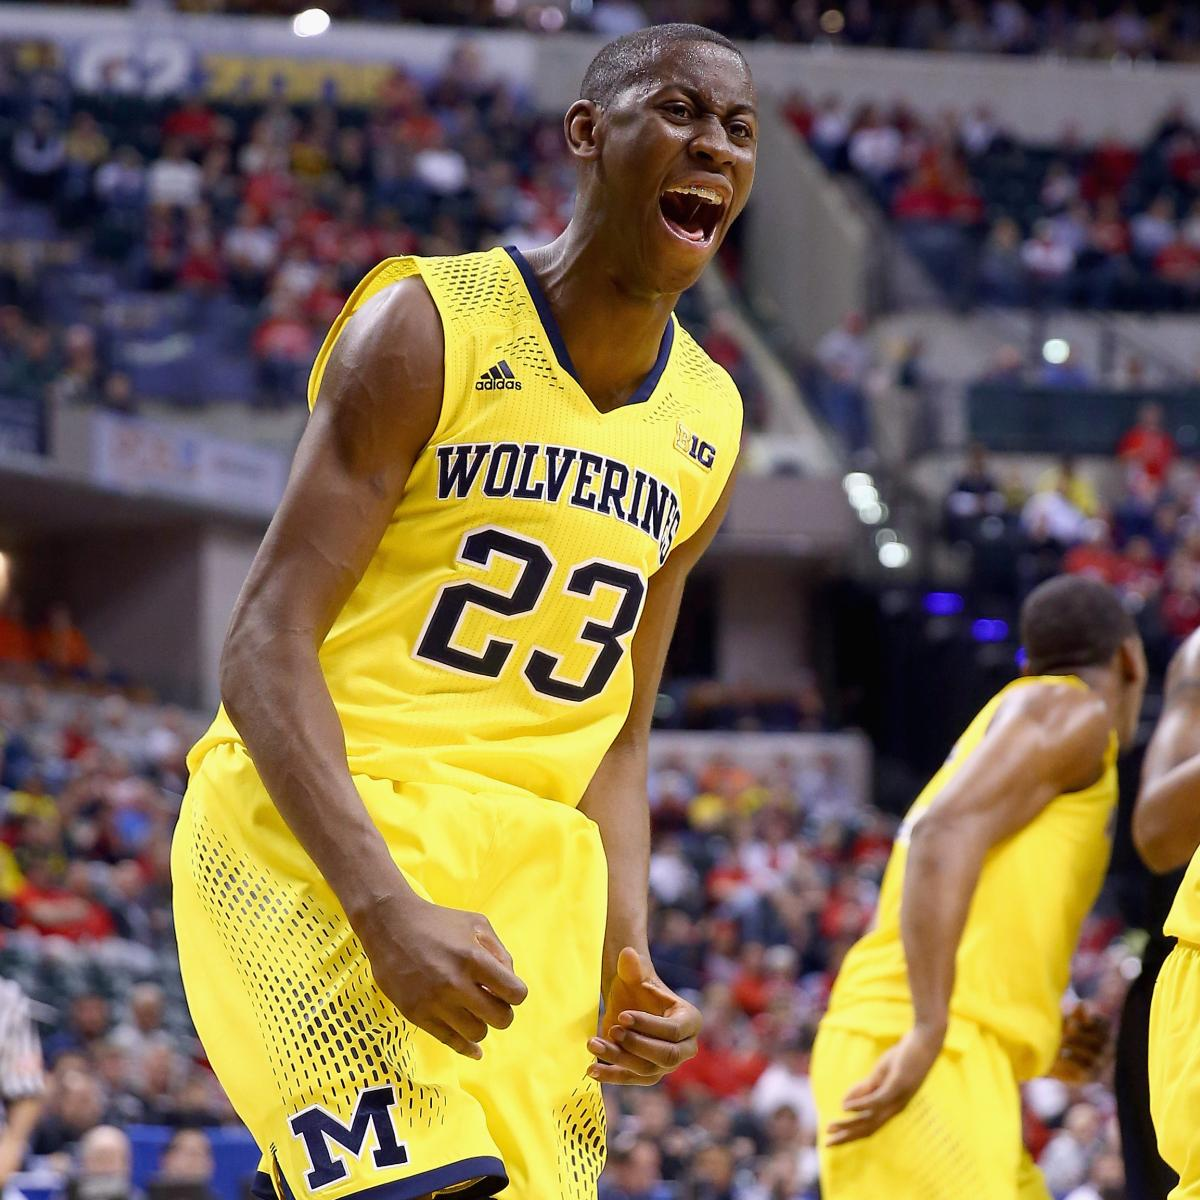 caris levert - photo #26